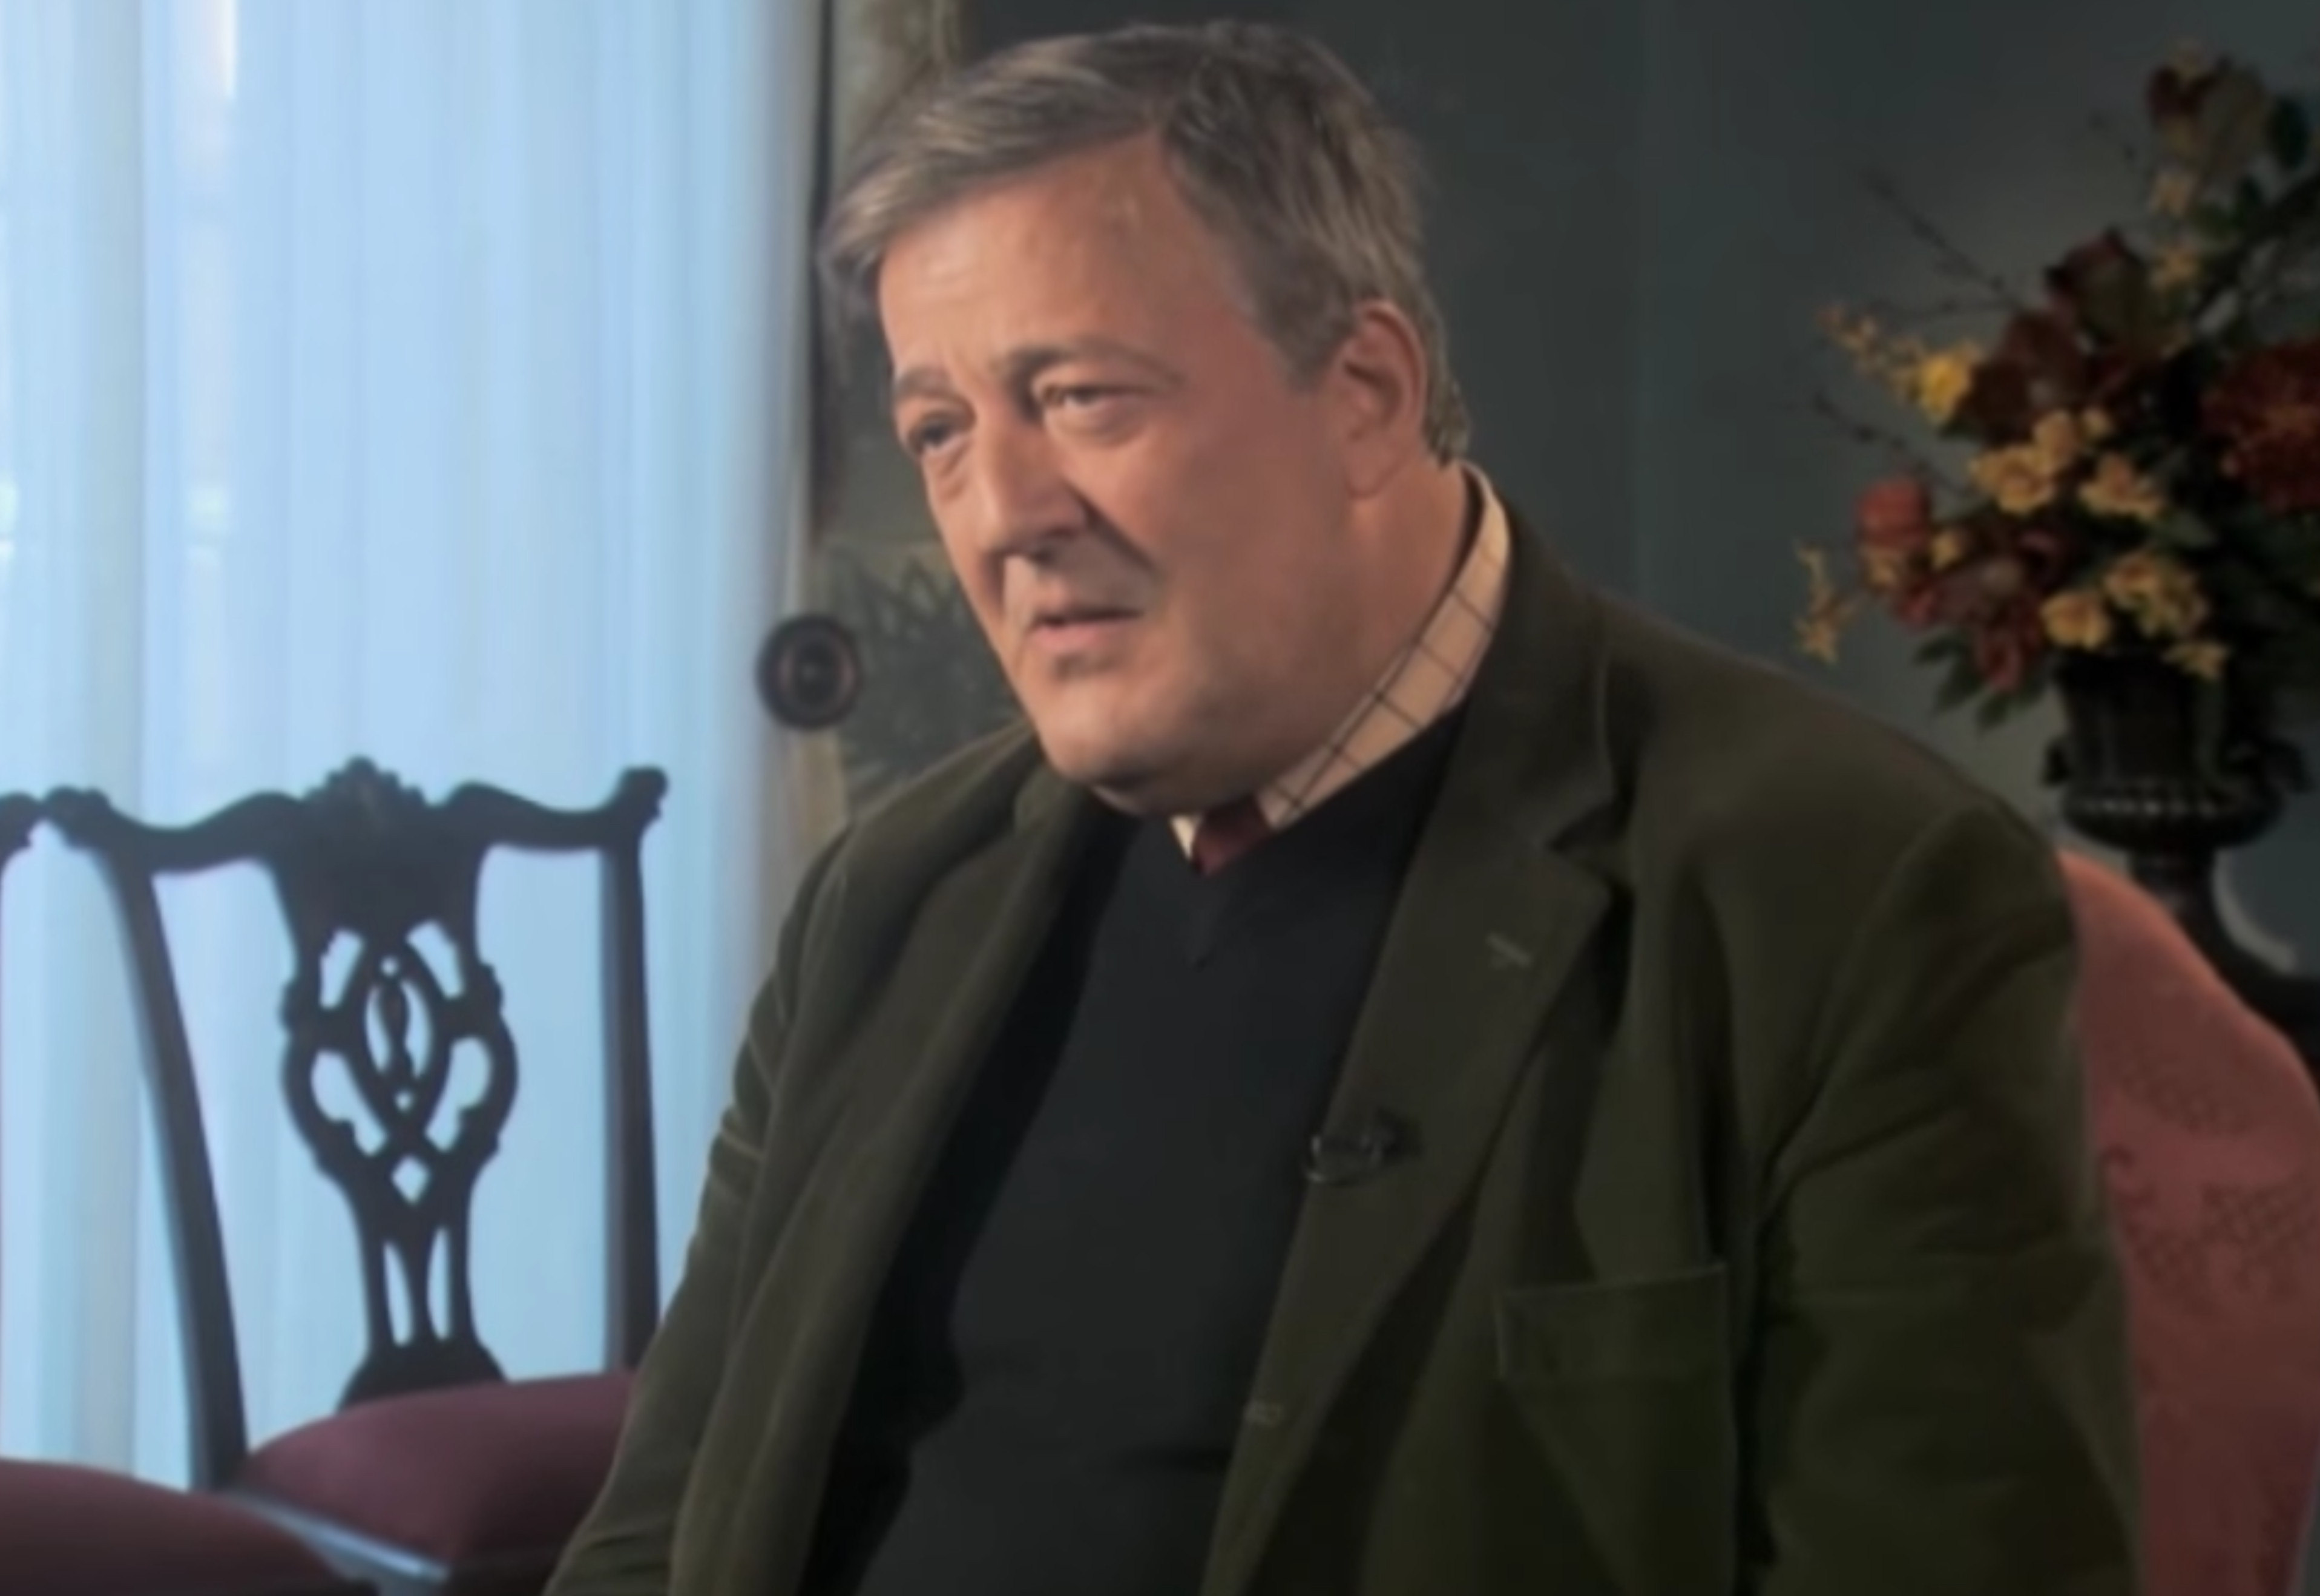 Stephen Fry during the interview in question. Screenshot via YouTube.